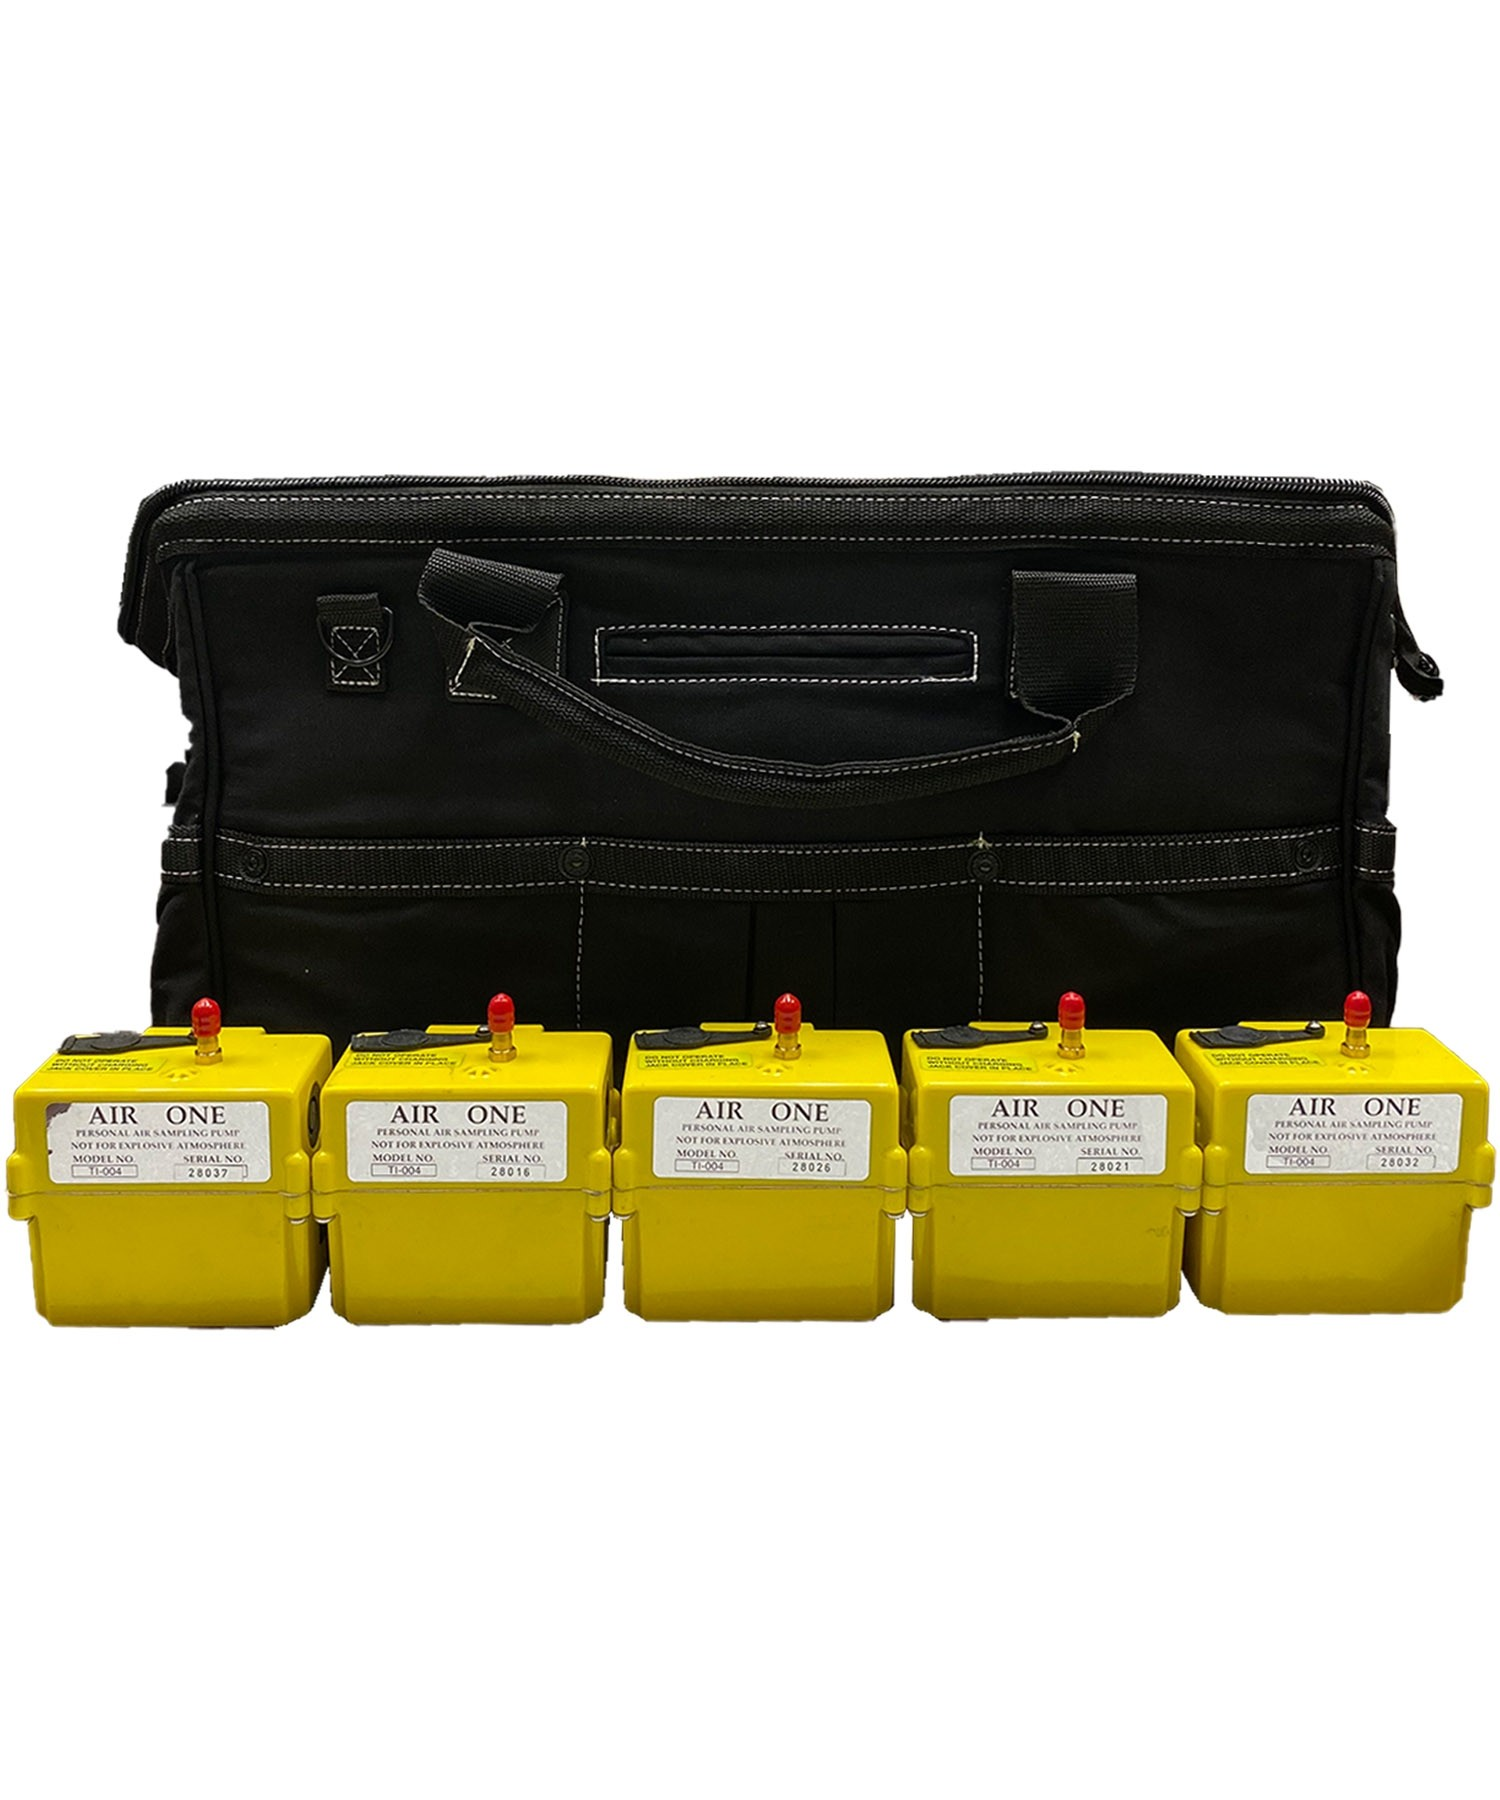 "Air-One 5-Pump Kit for Lead and Asbestos Air Sampling in 20"" CANVAS WORK BAG w/custom foam"